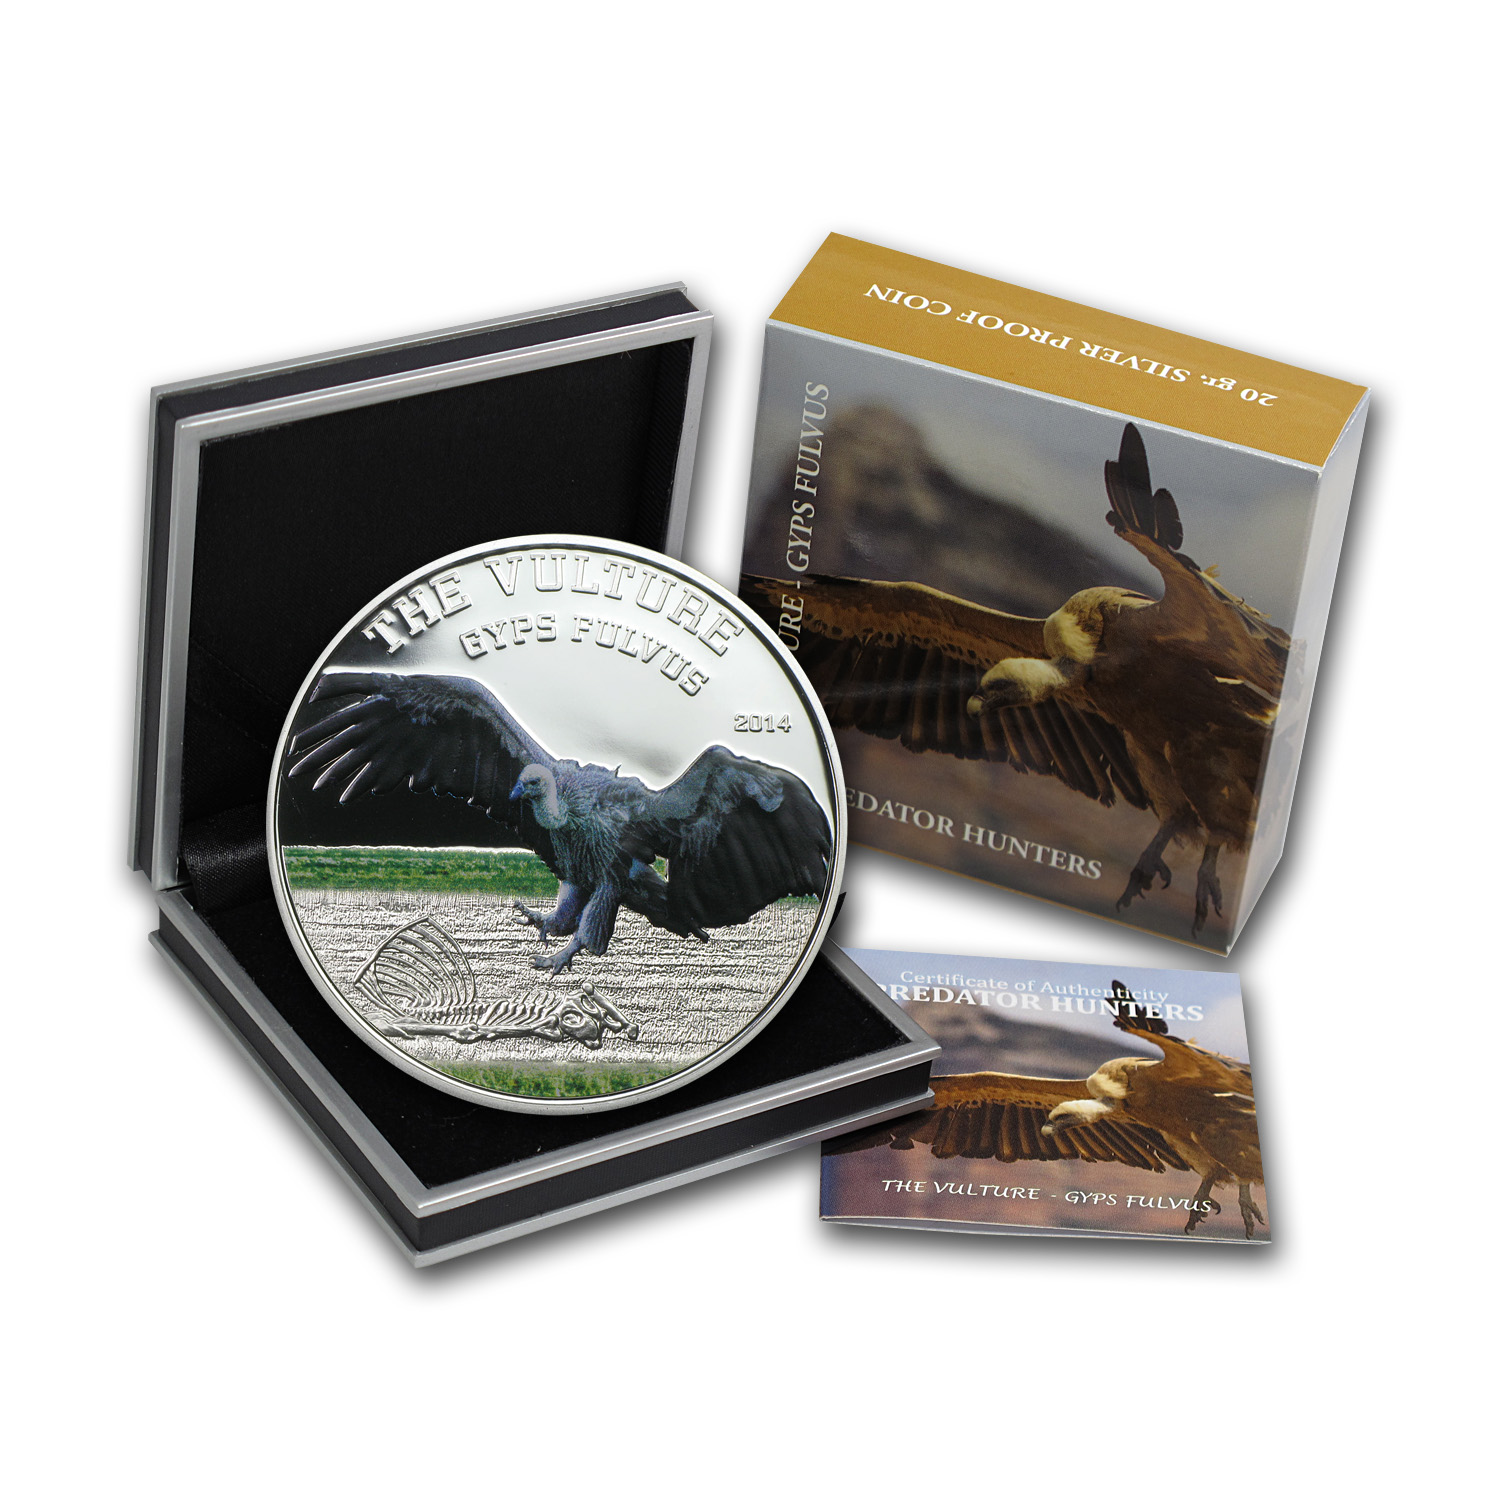 2014 Tanzania Silver Predator Hunters The Vulture Proof